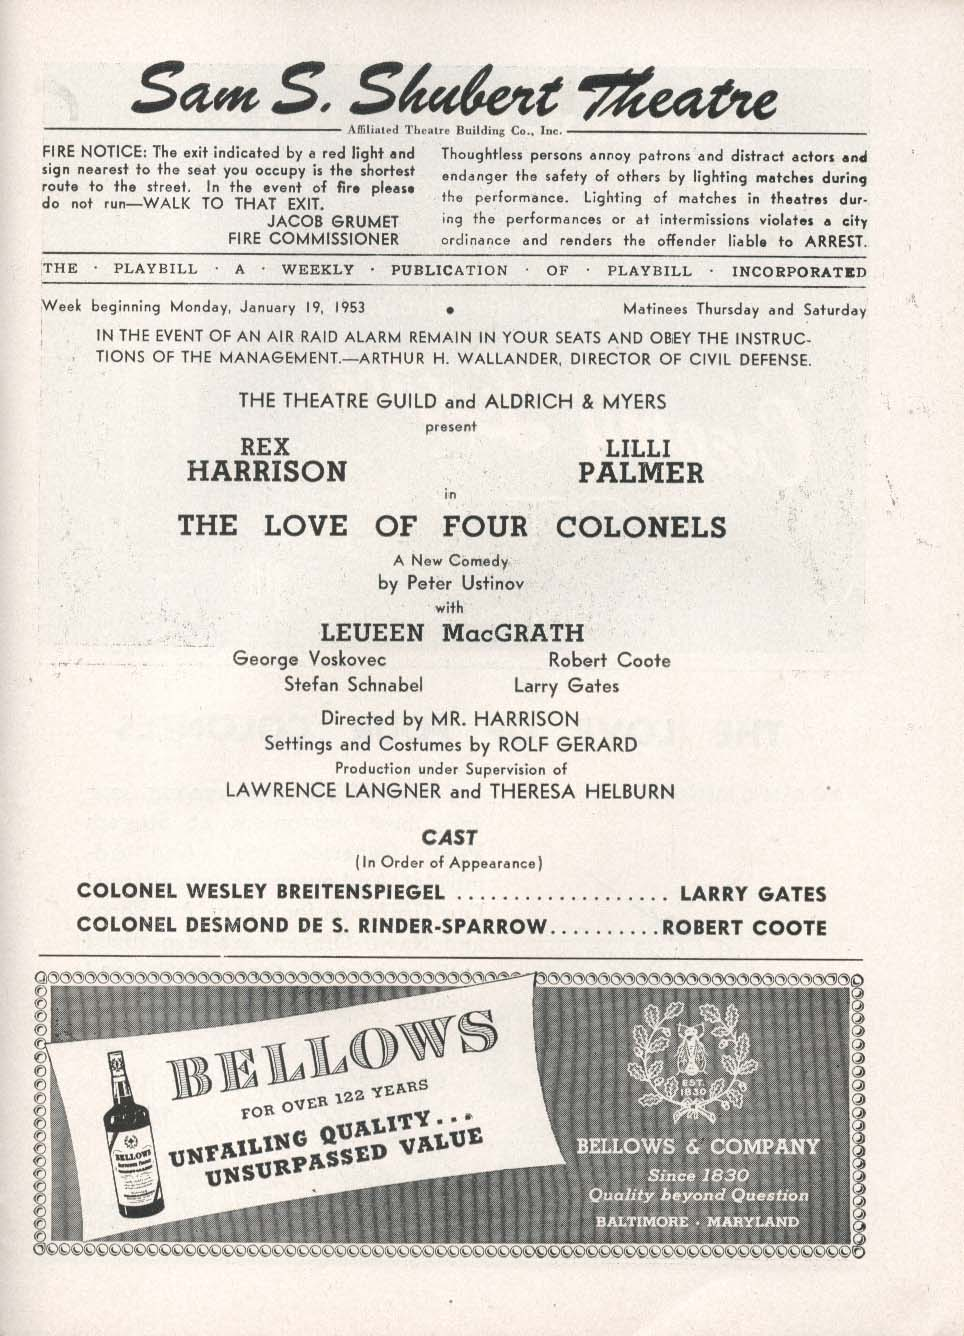 Image for The Love of Four Colonels Playbill 1/19/53 Rex Harrison Lilli Palmer Shubert